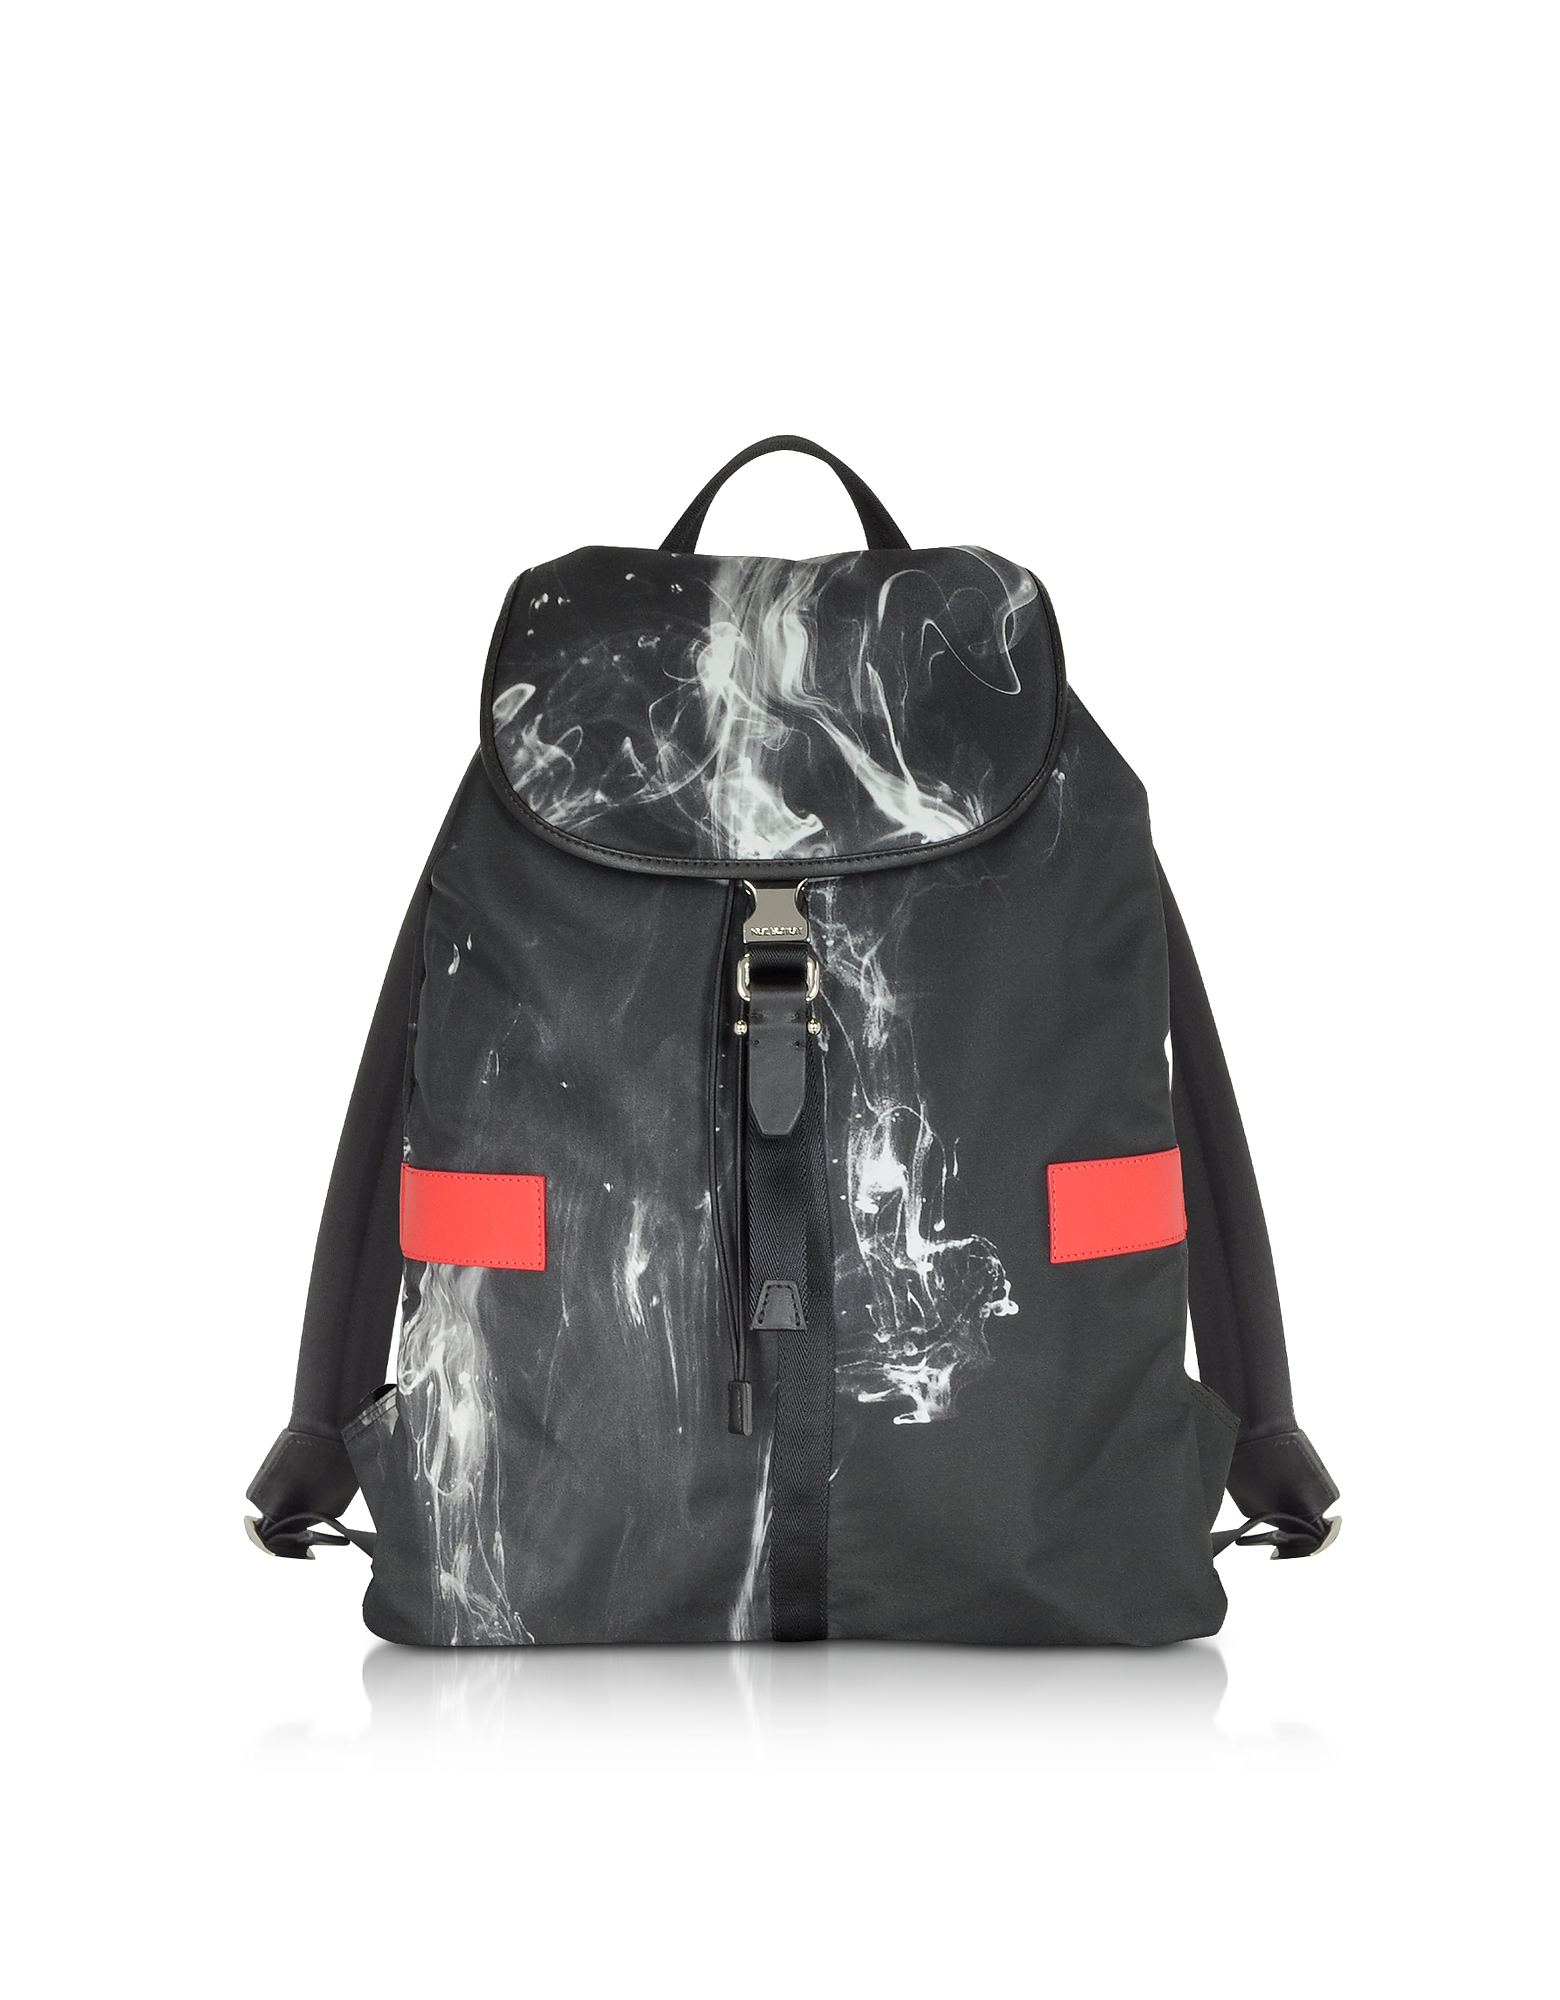 Neil Barrett Backpacks, Black/White Liquid Ink Printed Nylon Rucksack w/Red Leather Band